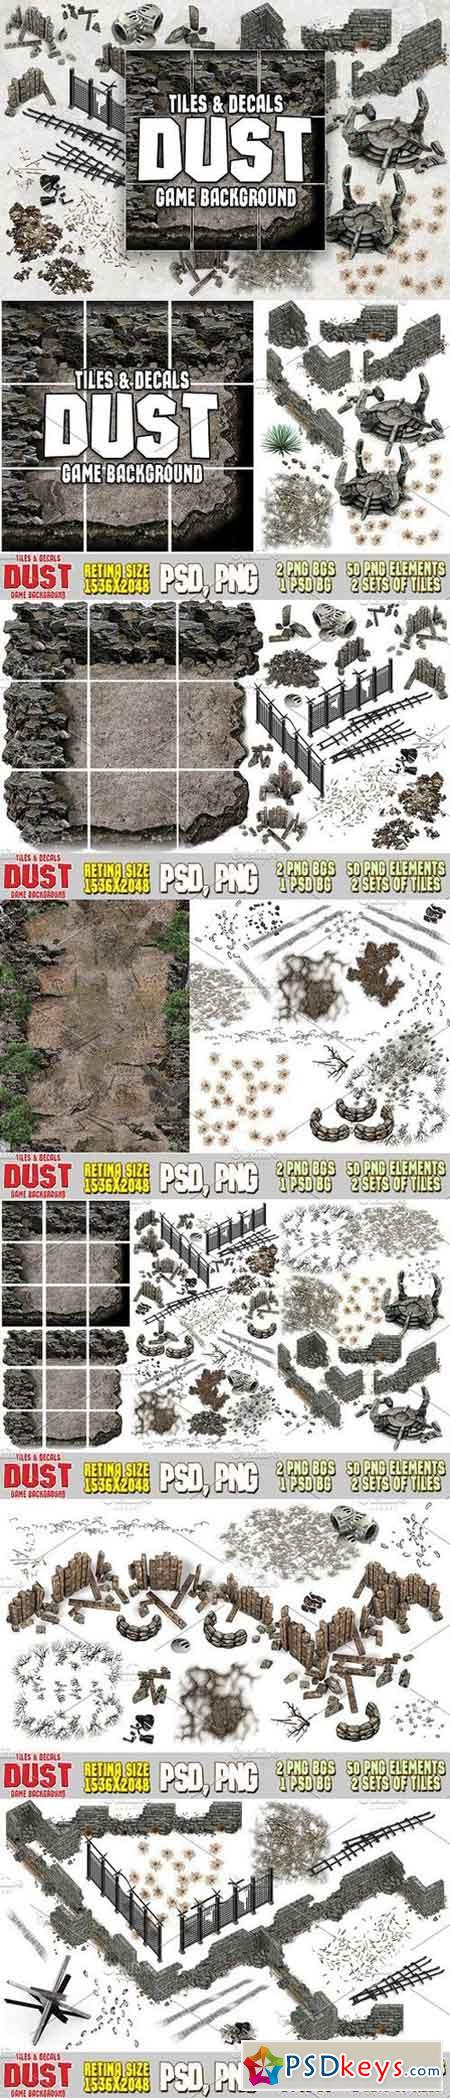 DUST 2D MAP TILES AND DECALS 1371923